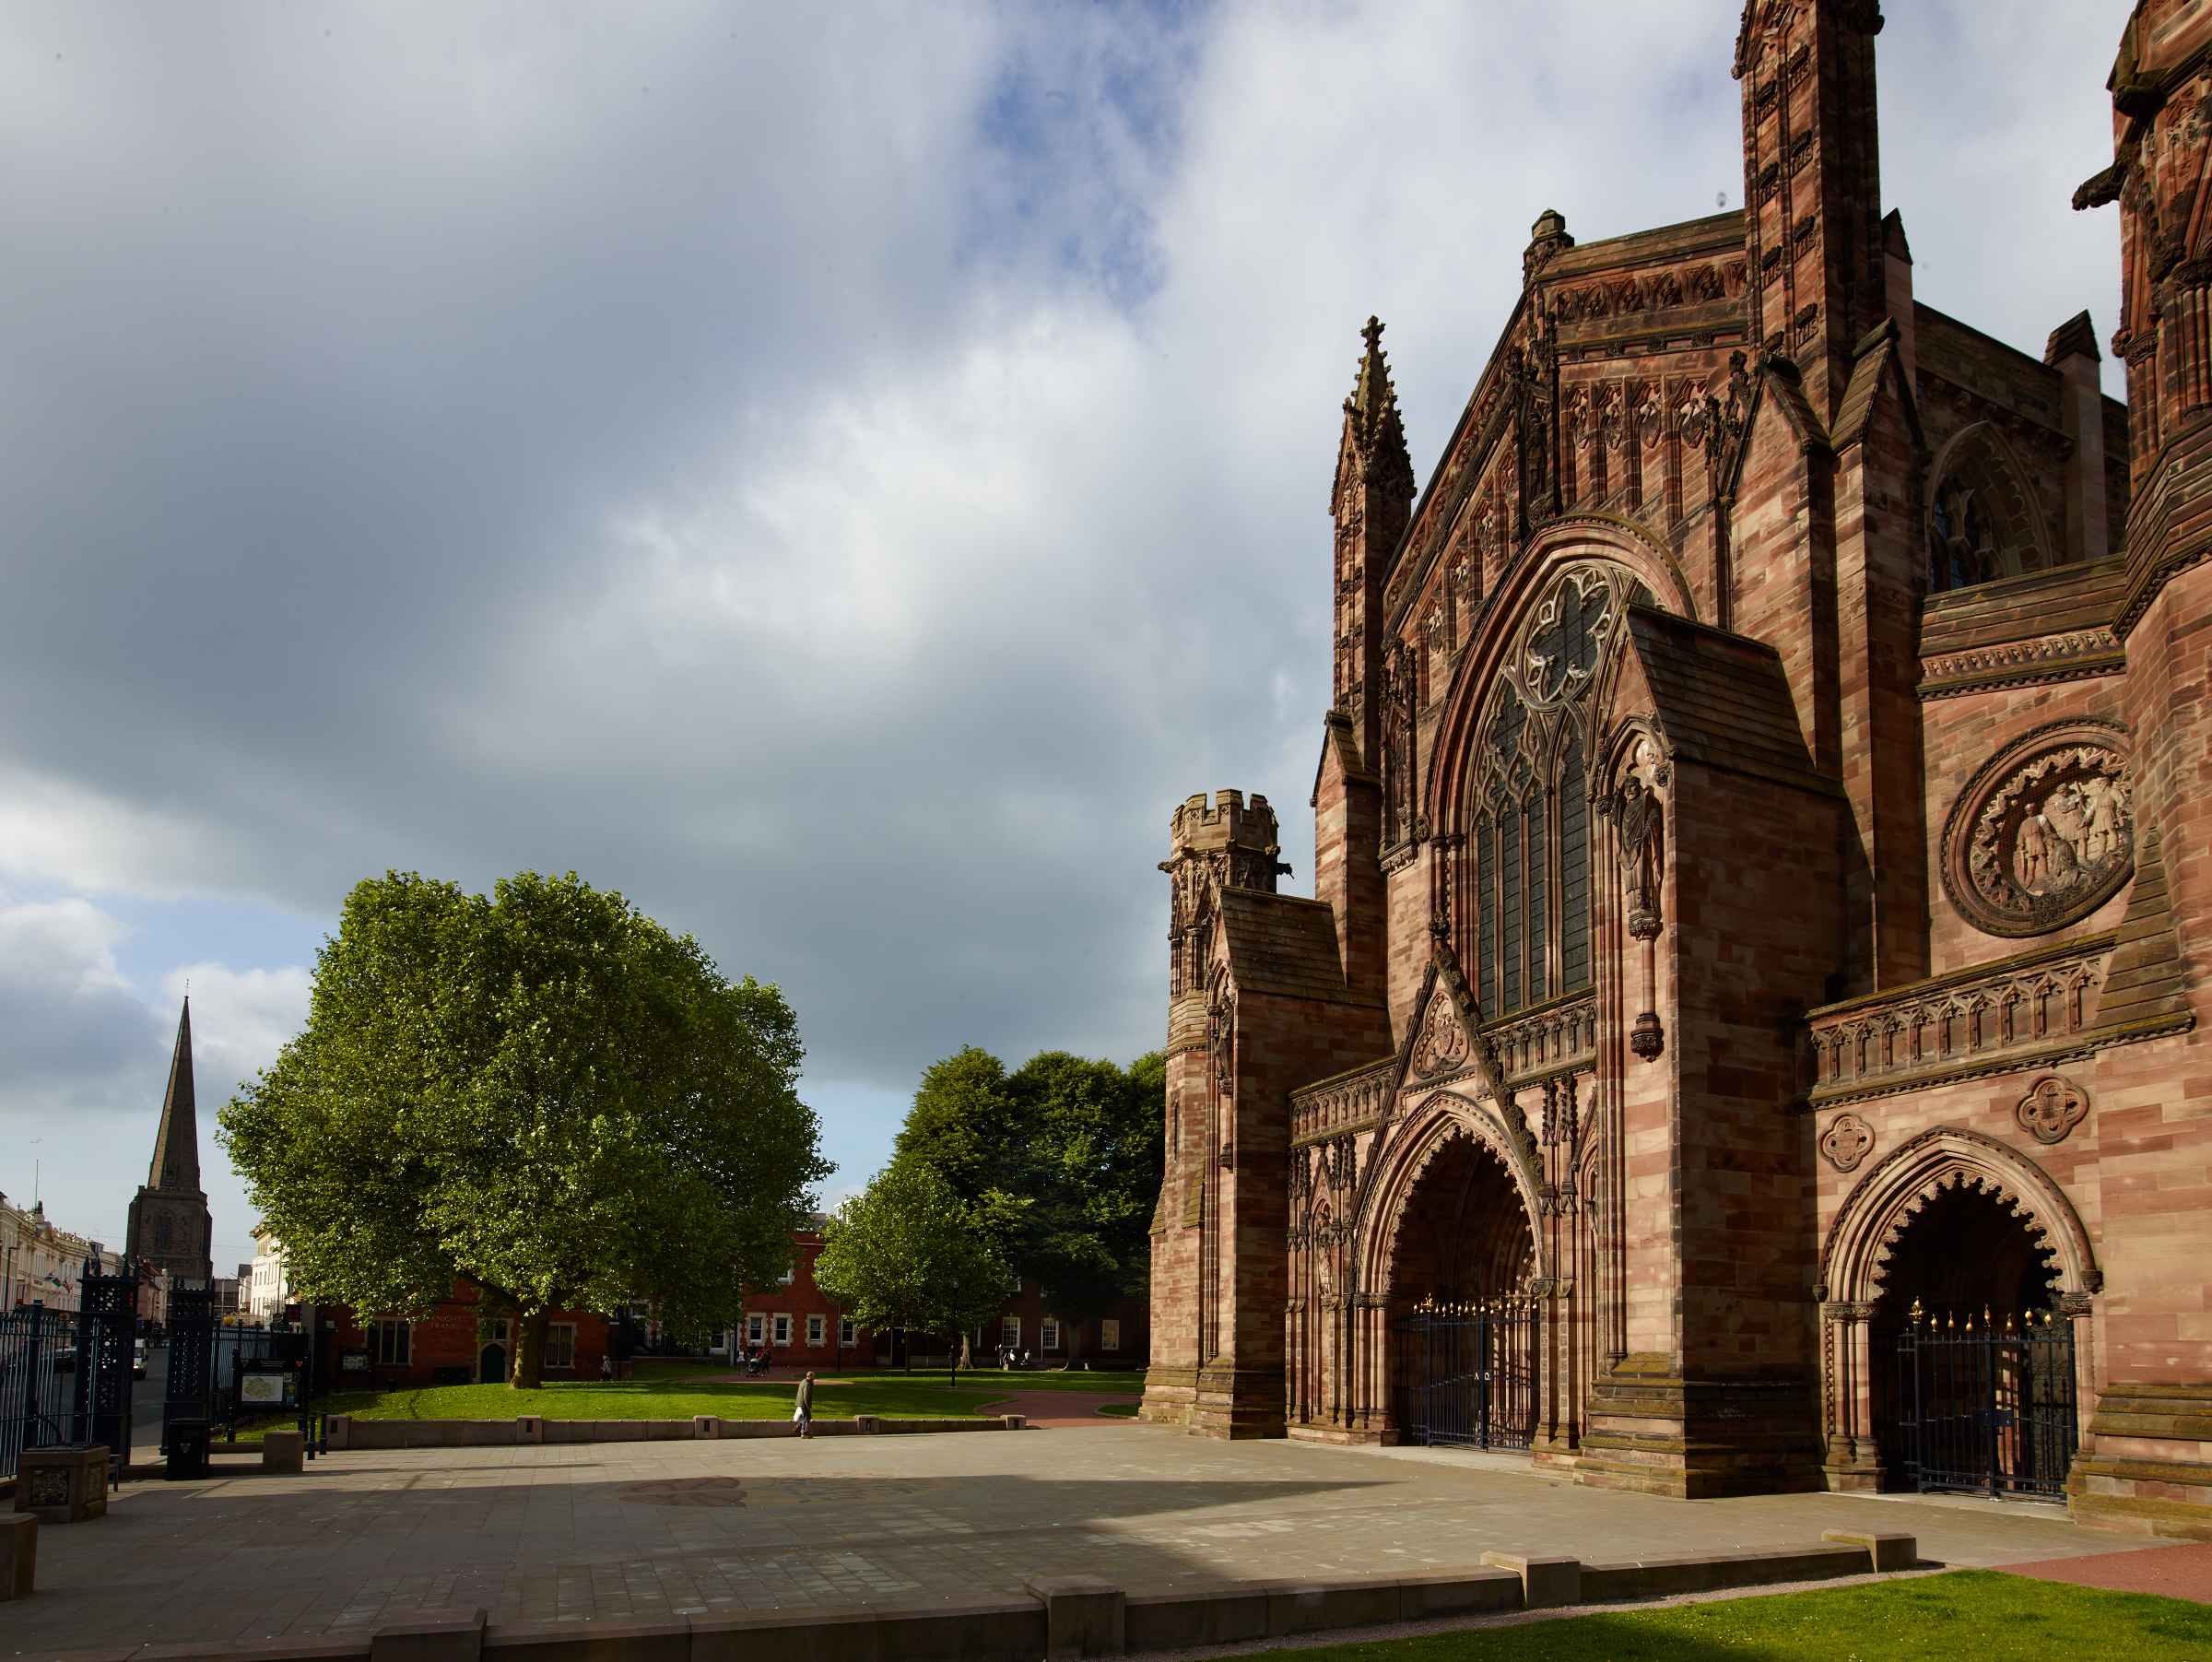 The west entrance, Hereford CathedralThe west entrance, Hereford Cathedral